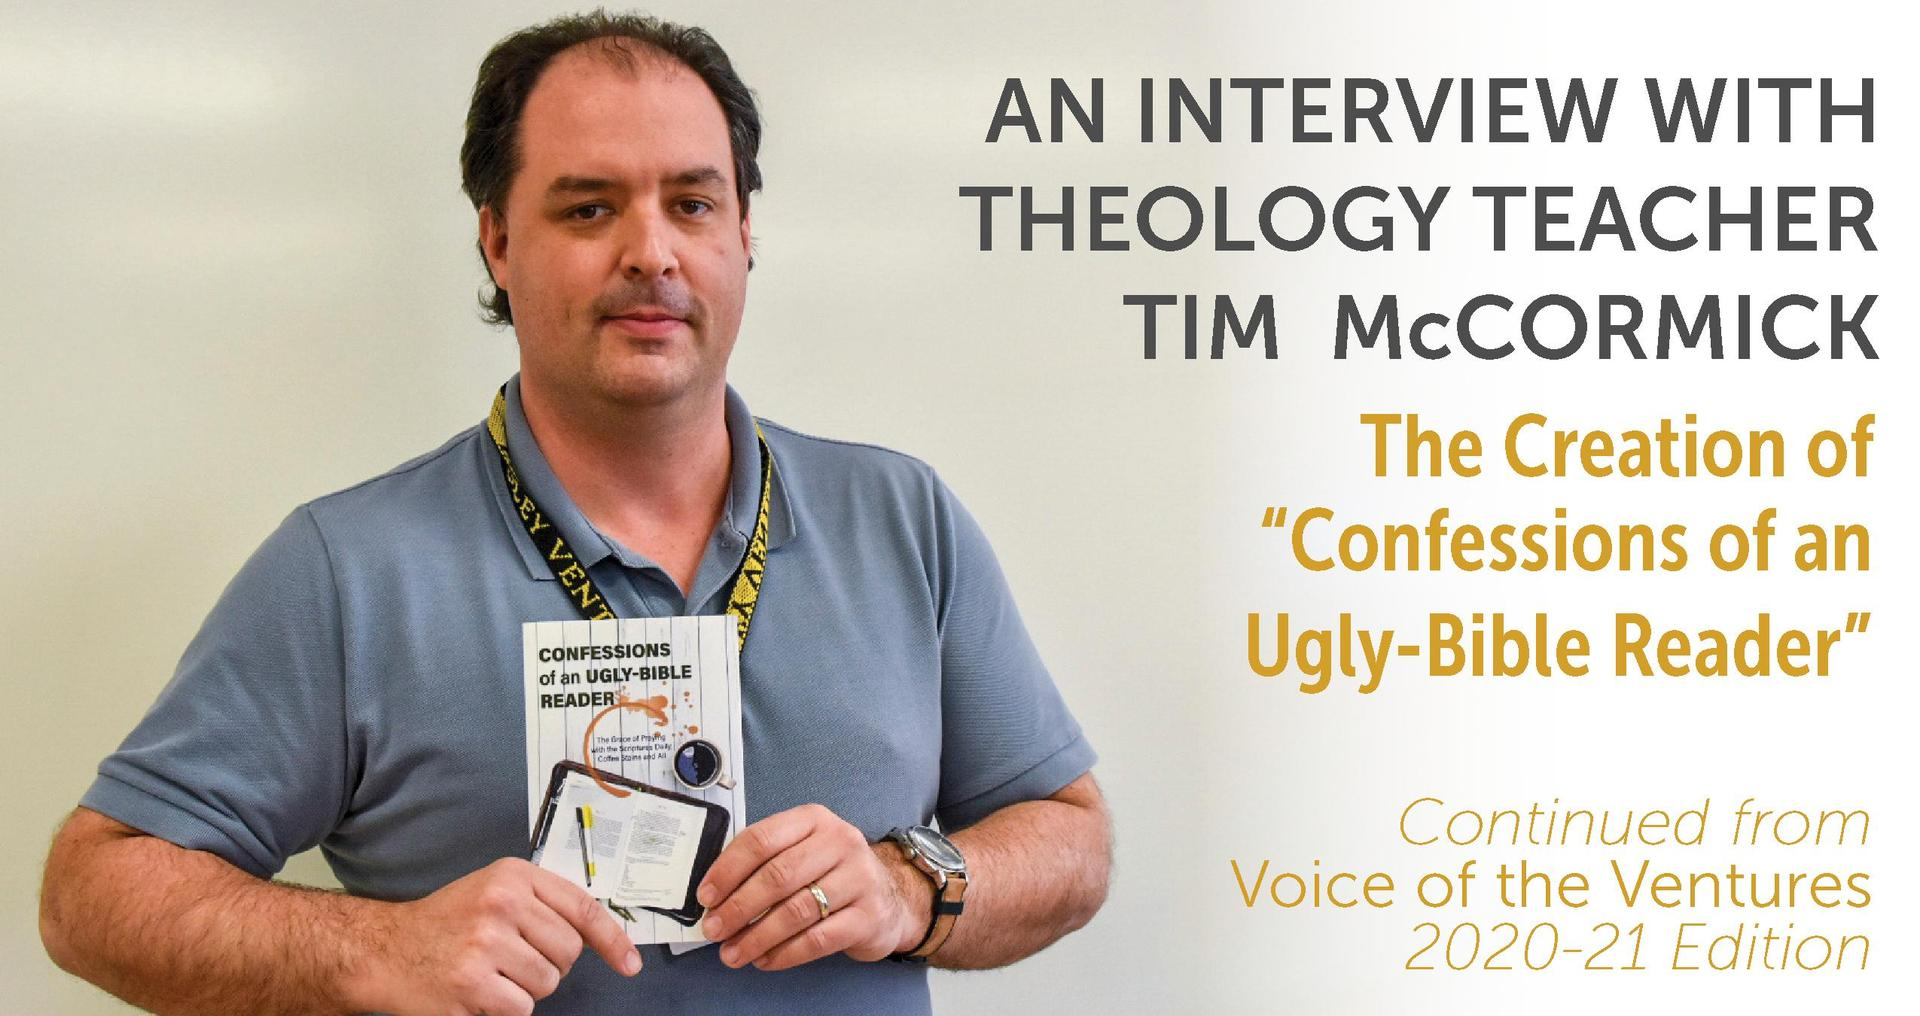 An Interview with Tim McCormick